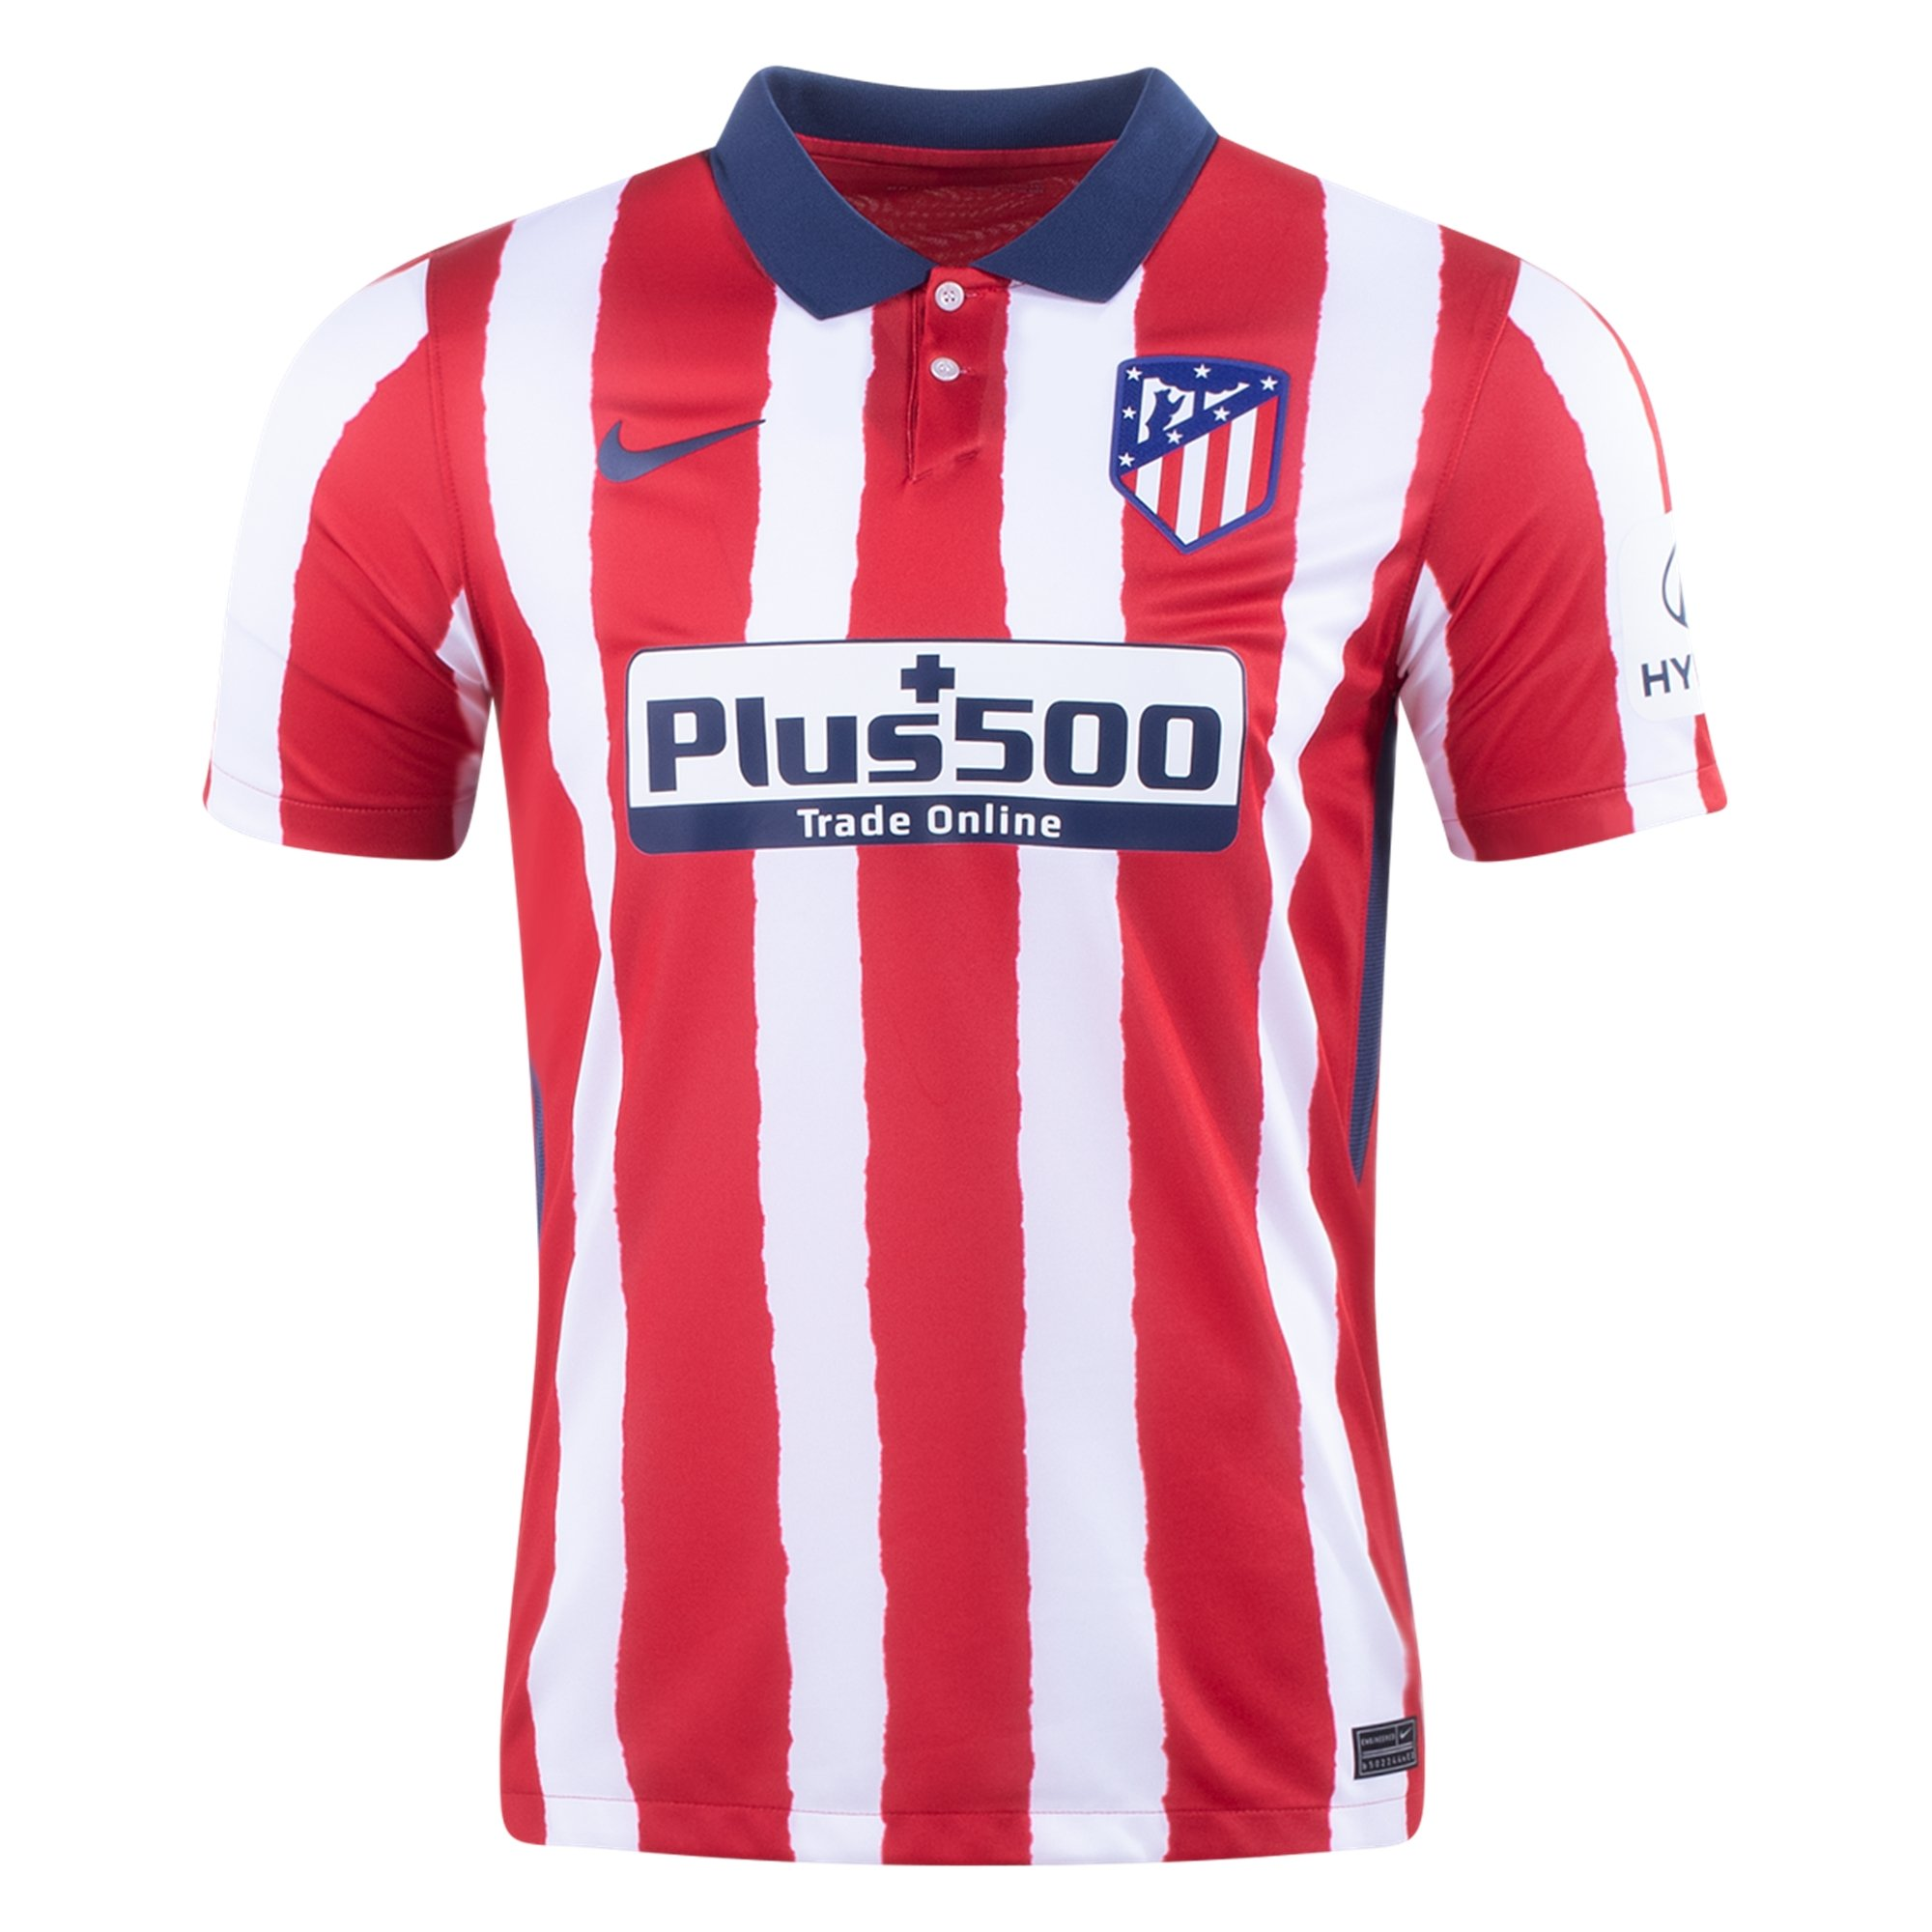 Nike Replica Atletico Madrid Home Jersey 20/21